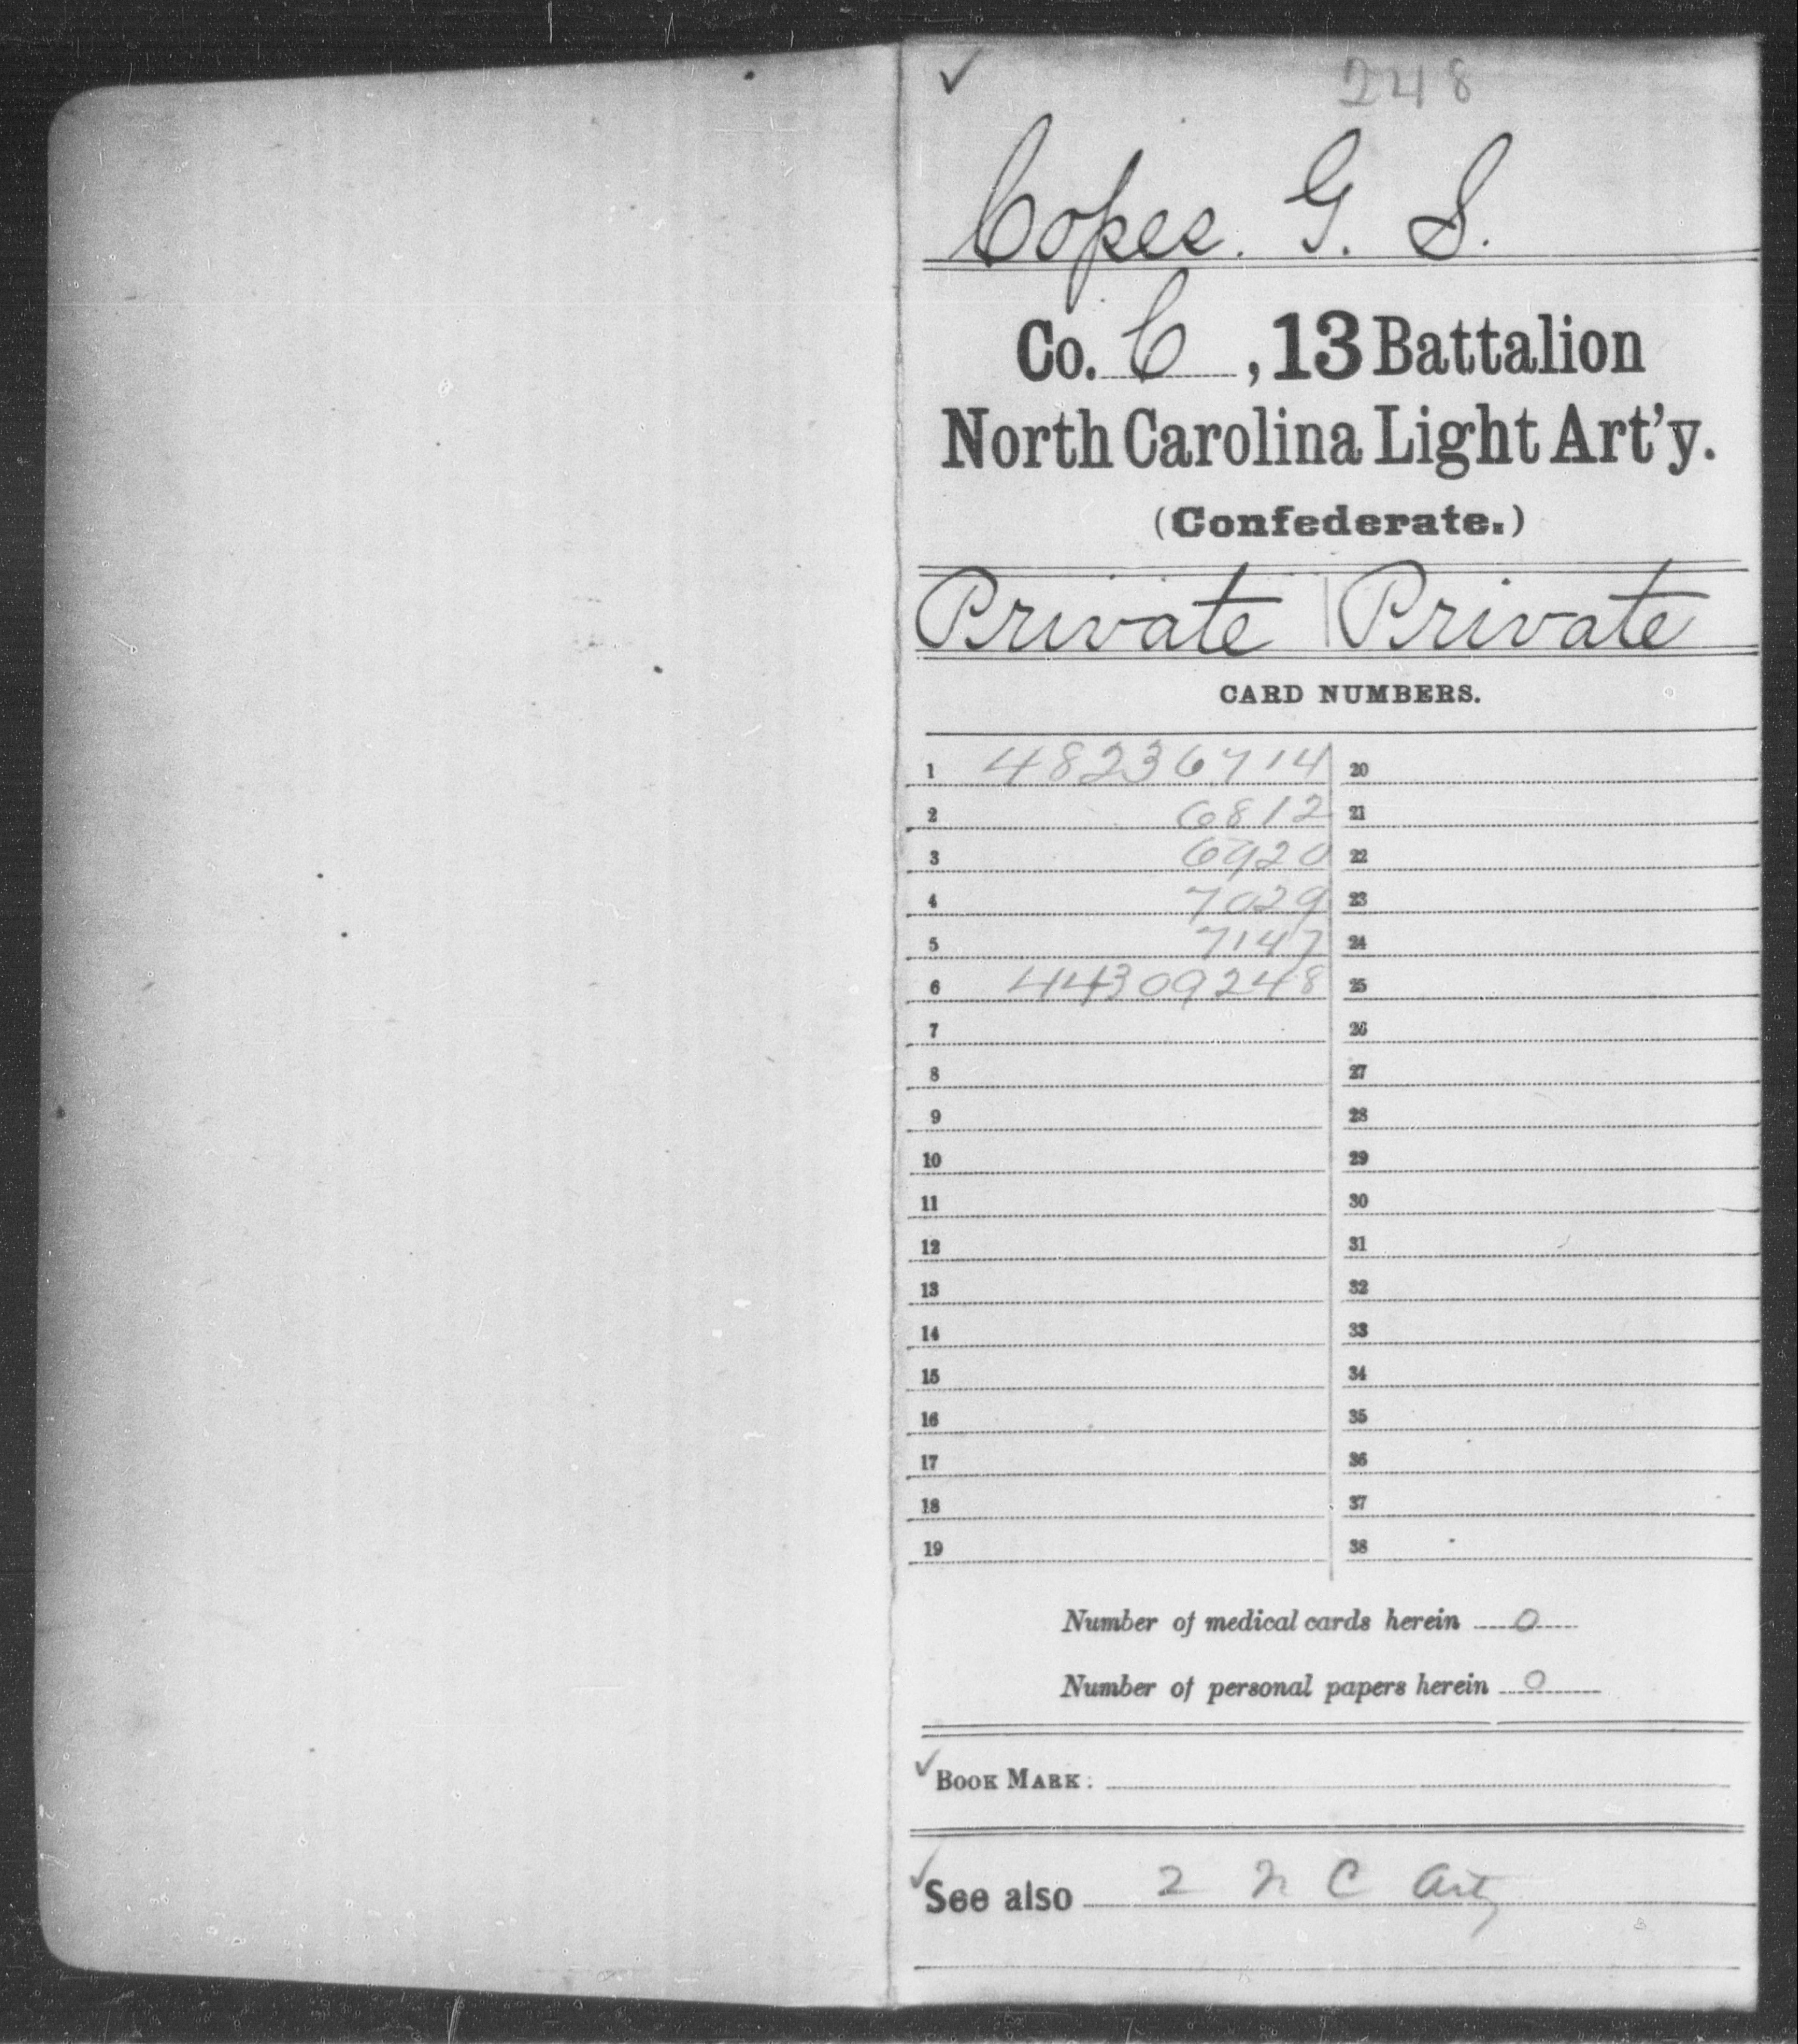 Confederate Soldiers from the State of North Carolina - Copes, G S - Thirteenth Battalion, Light Artillery